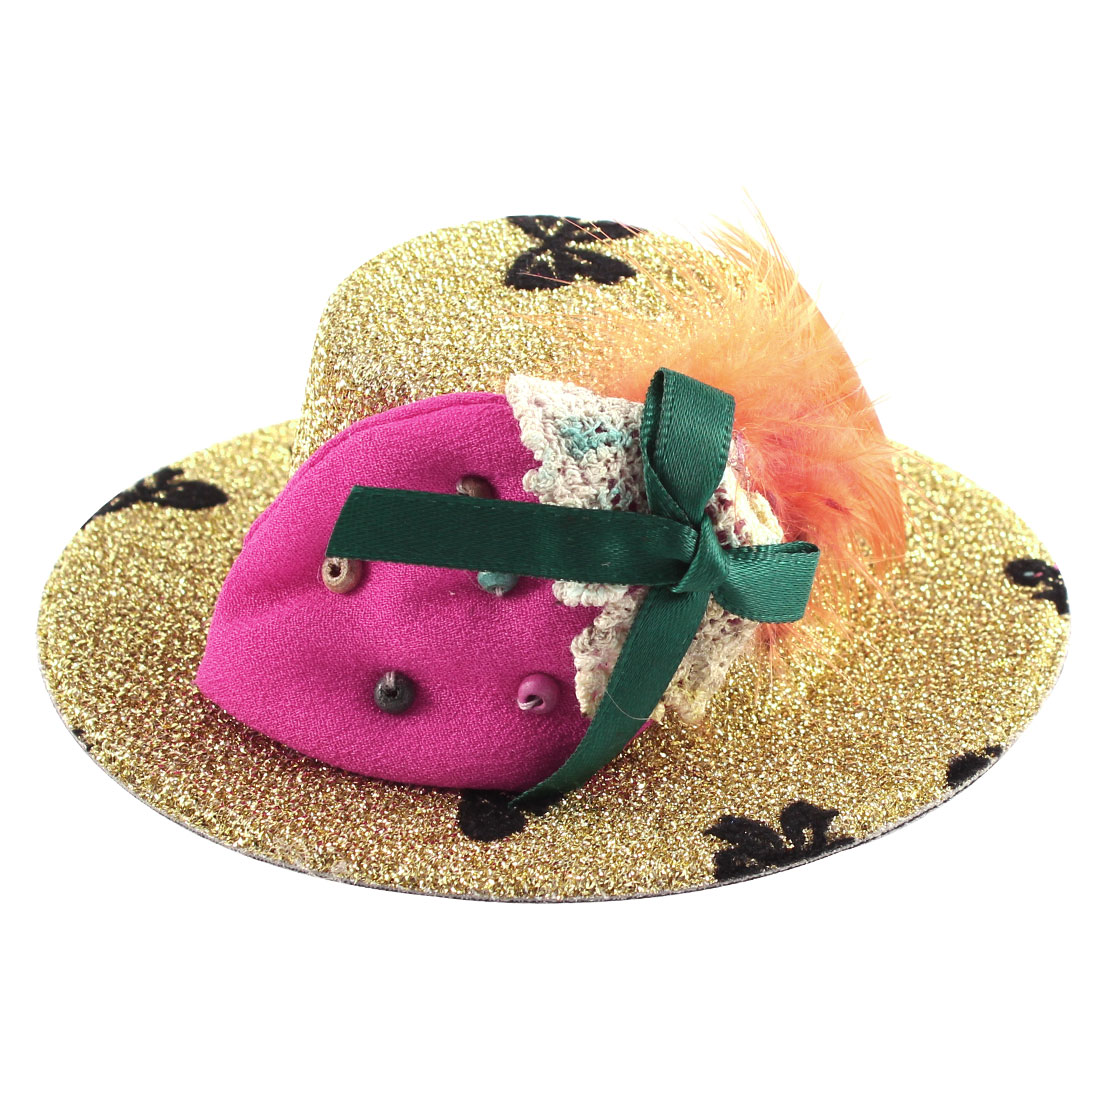 Lady Bowknot Print Fuchsia Strawberry Detail Glittery Tinsel Coated Top Hat Hairclip Gold Tone